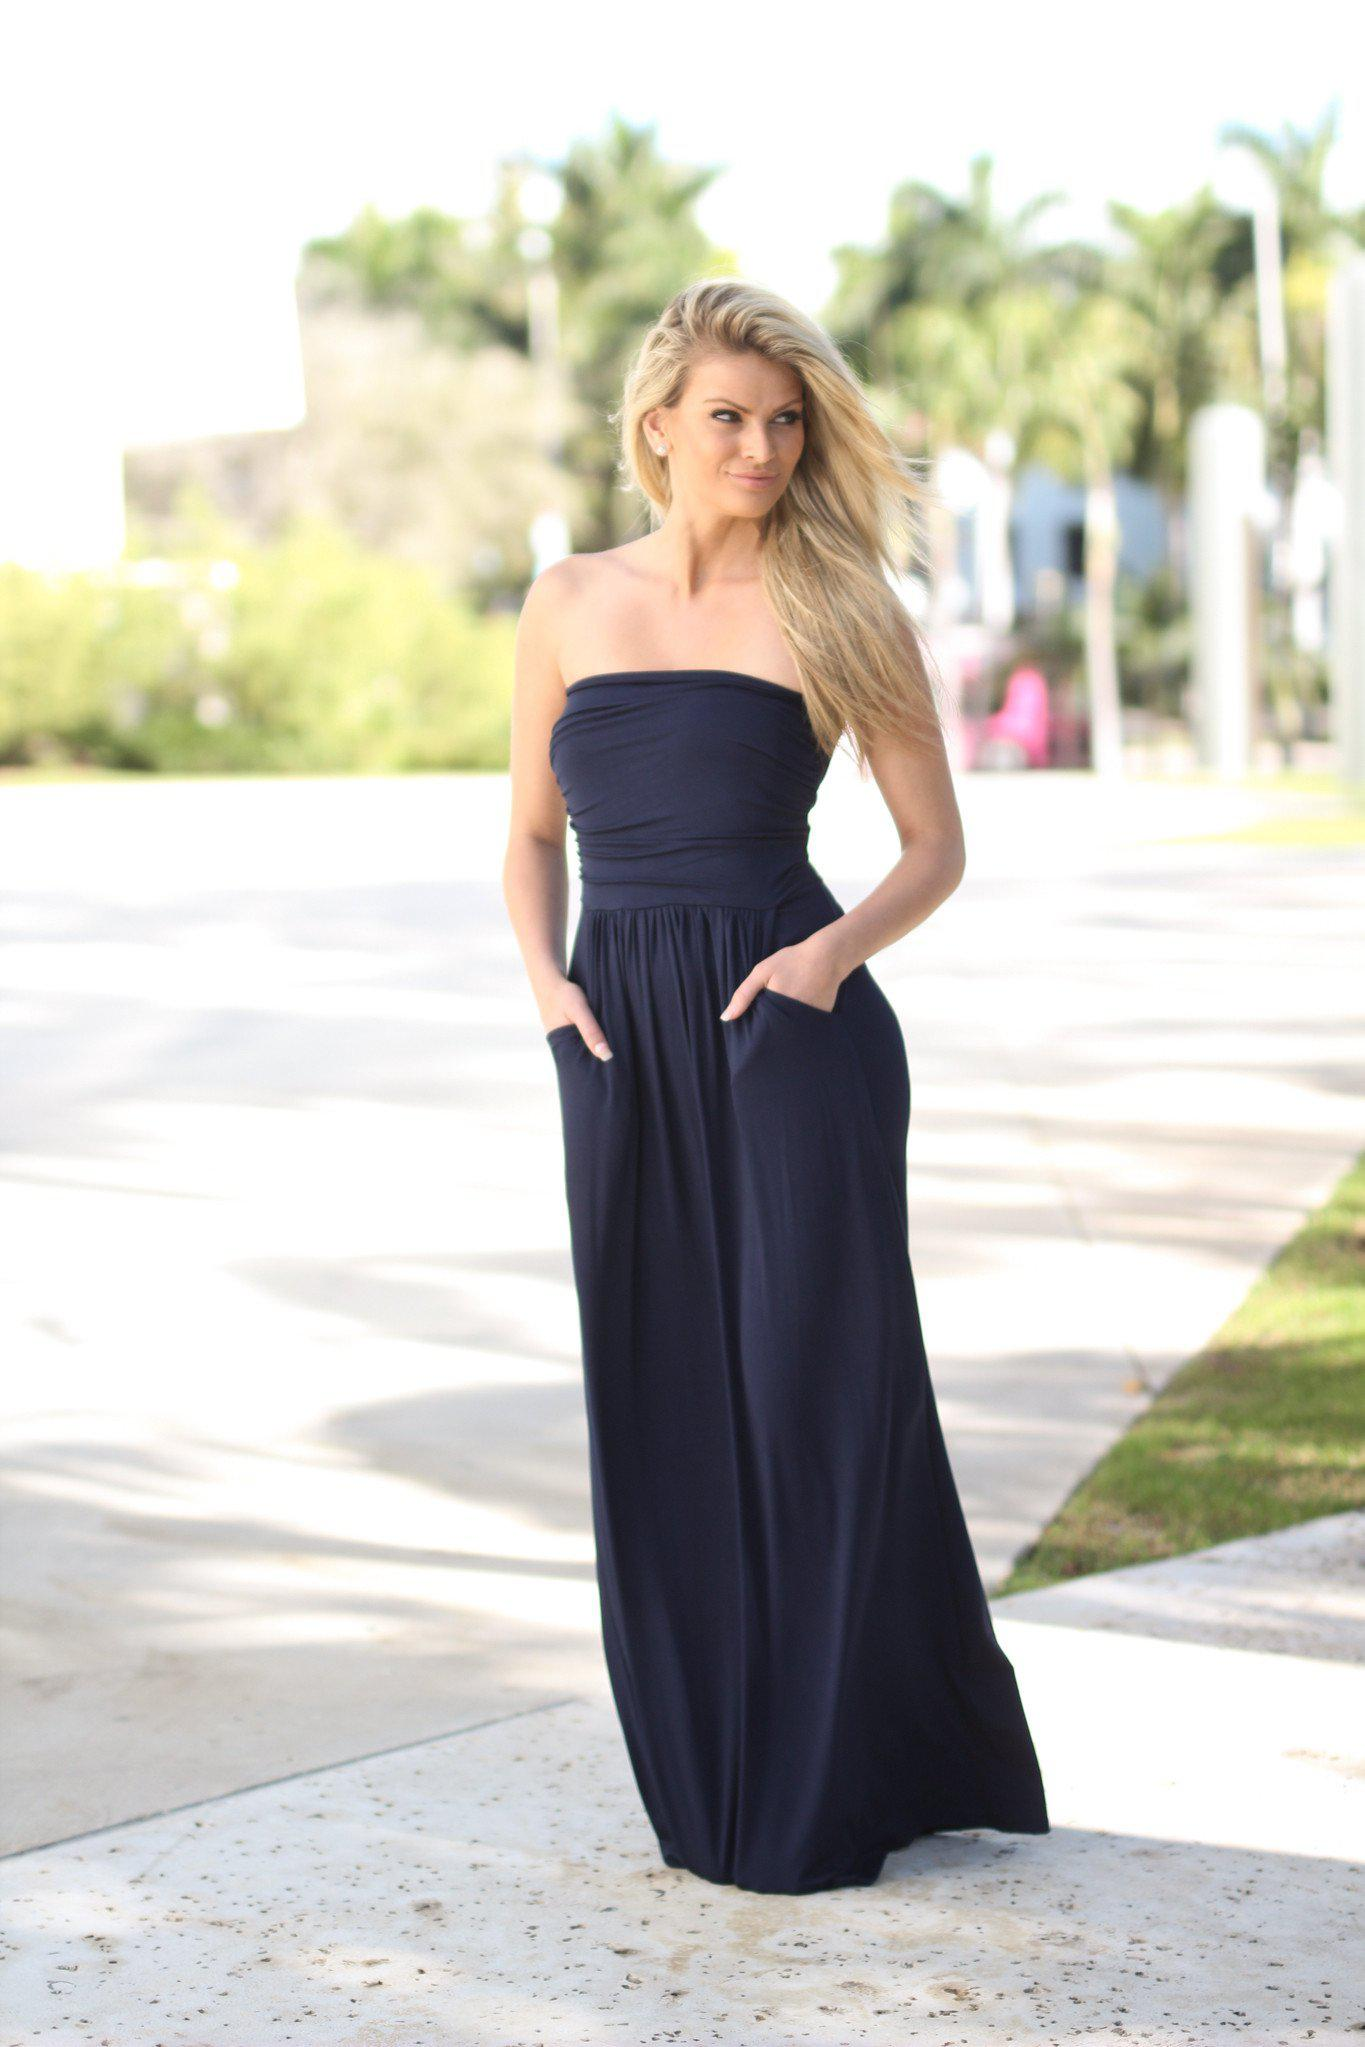 Strapless Navy Dress with Pockets